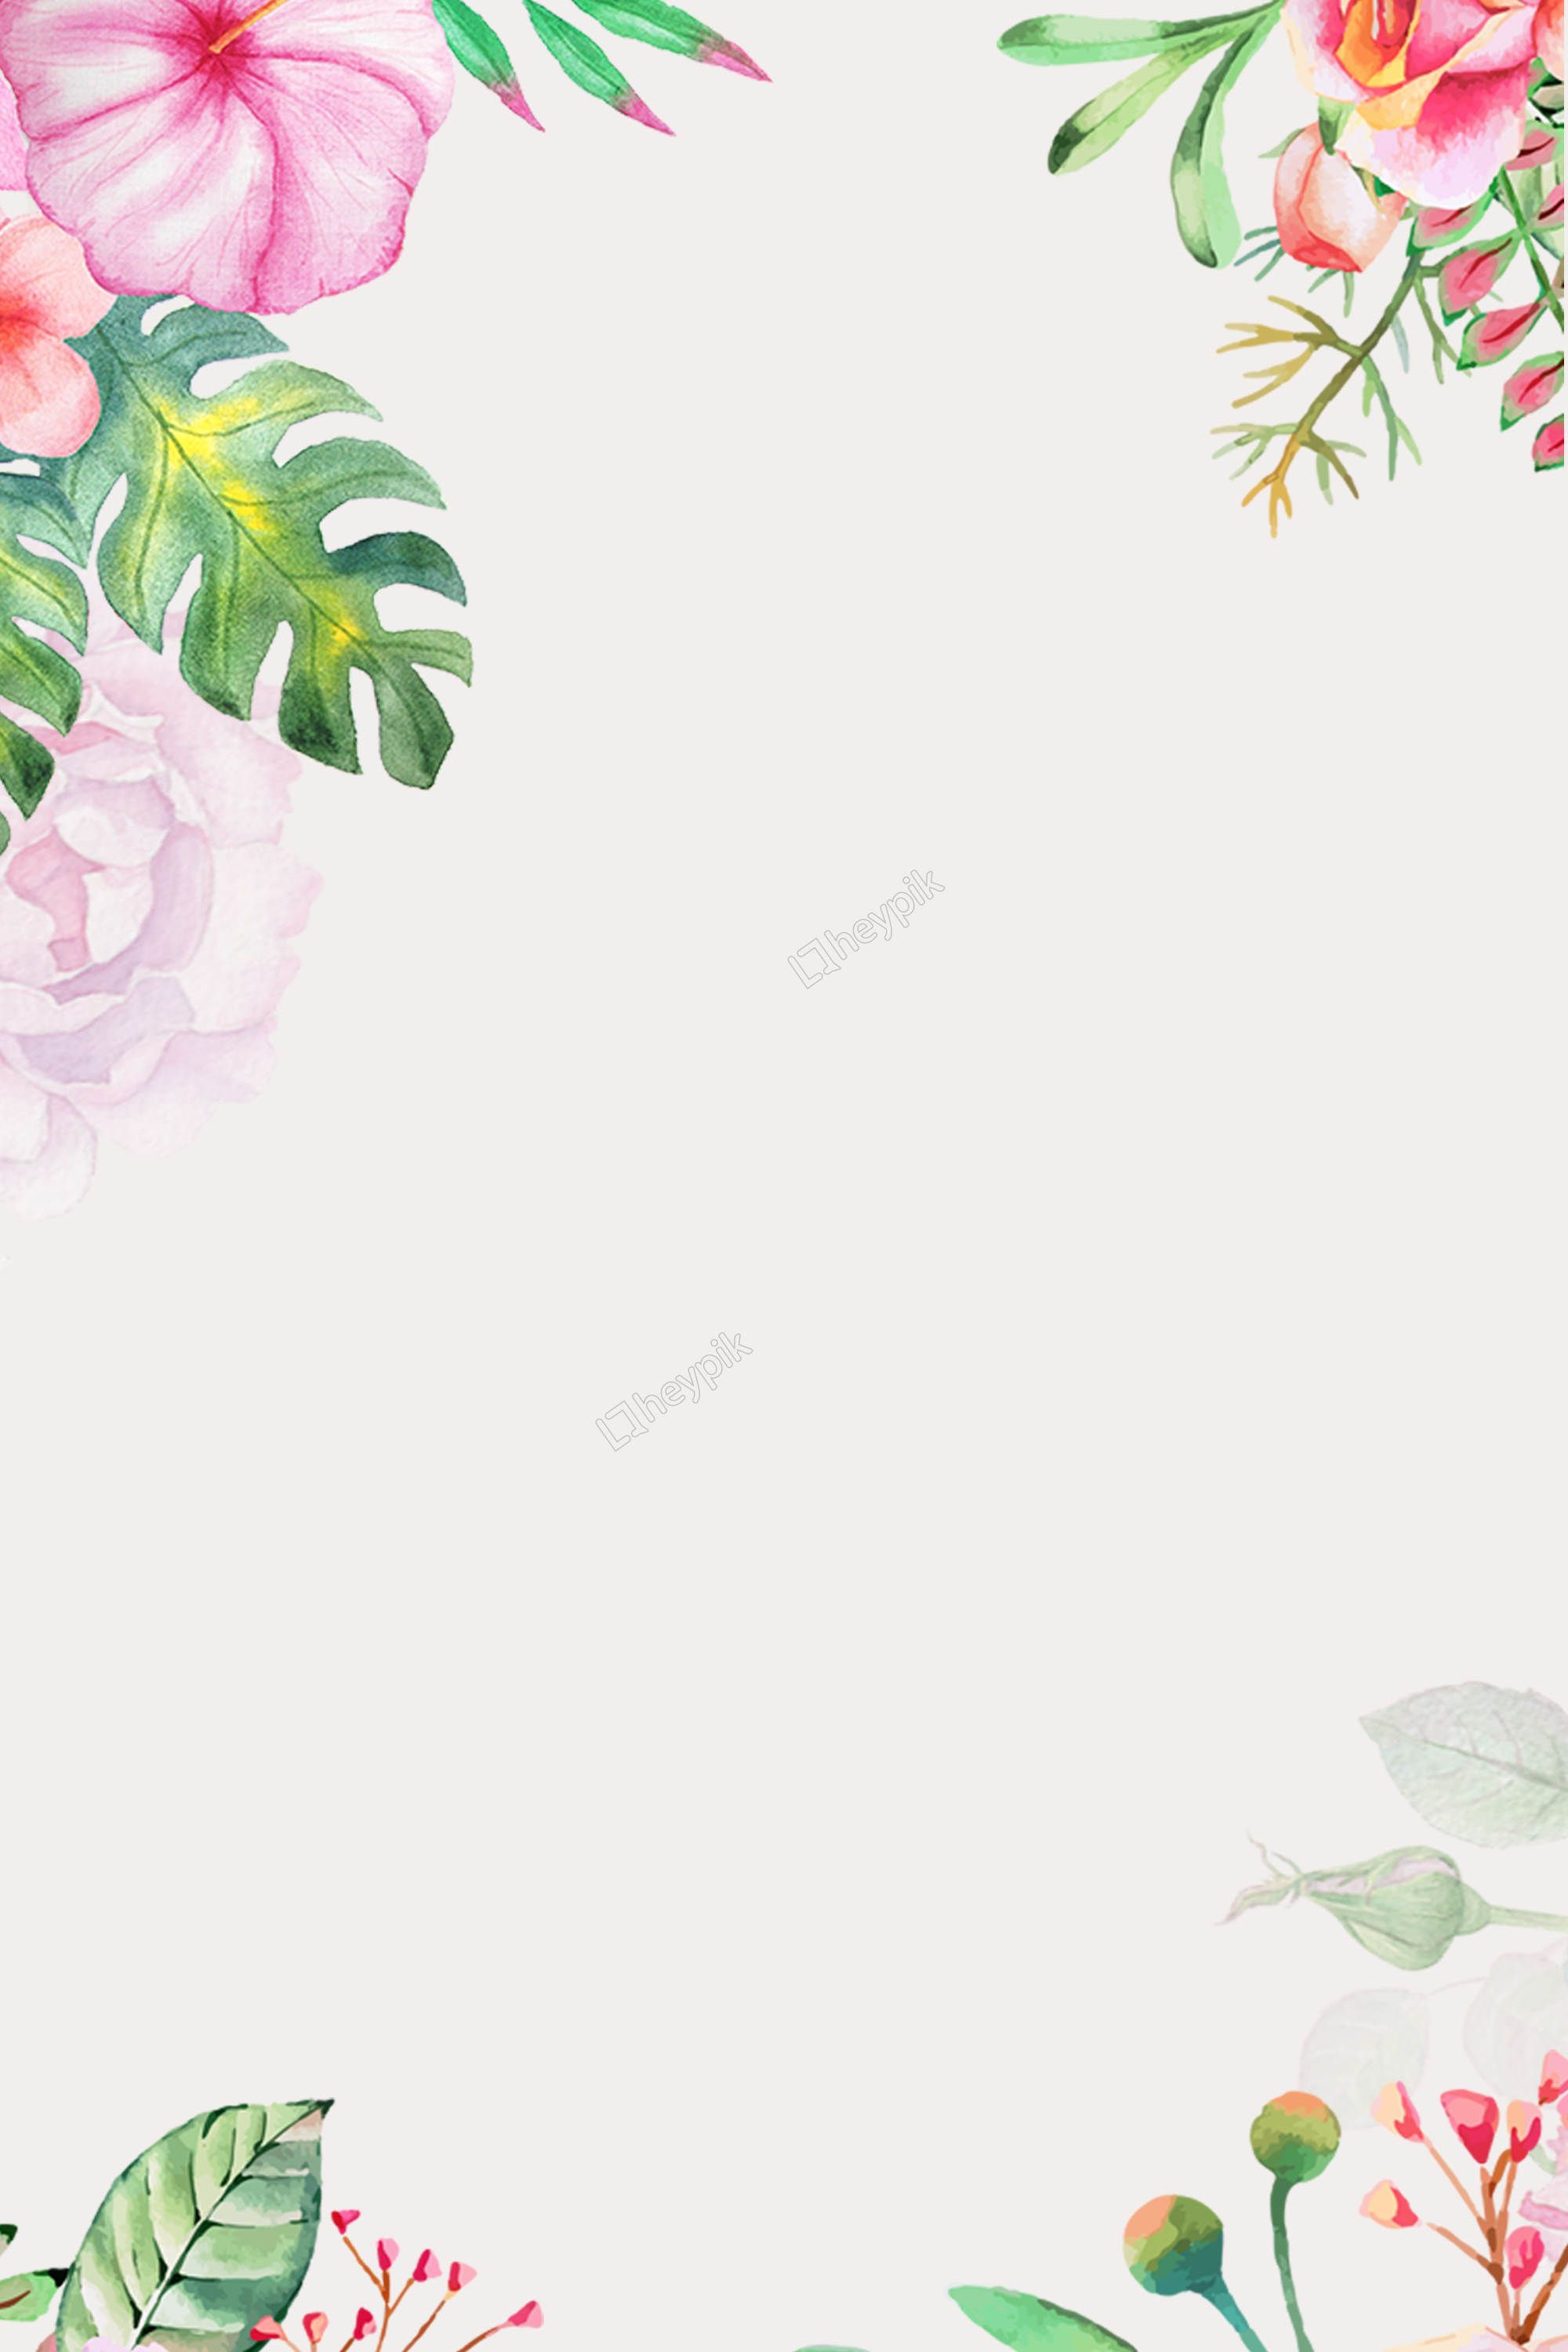 Colorful Watercolor Floral Background Pattern Repeating